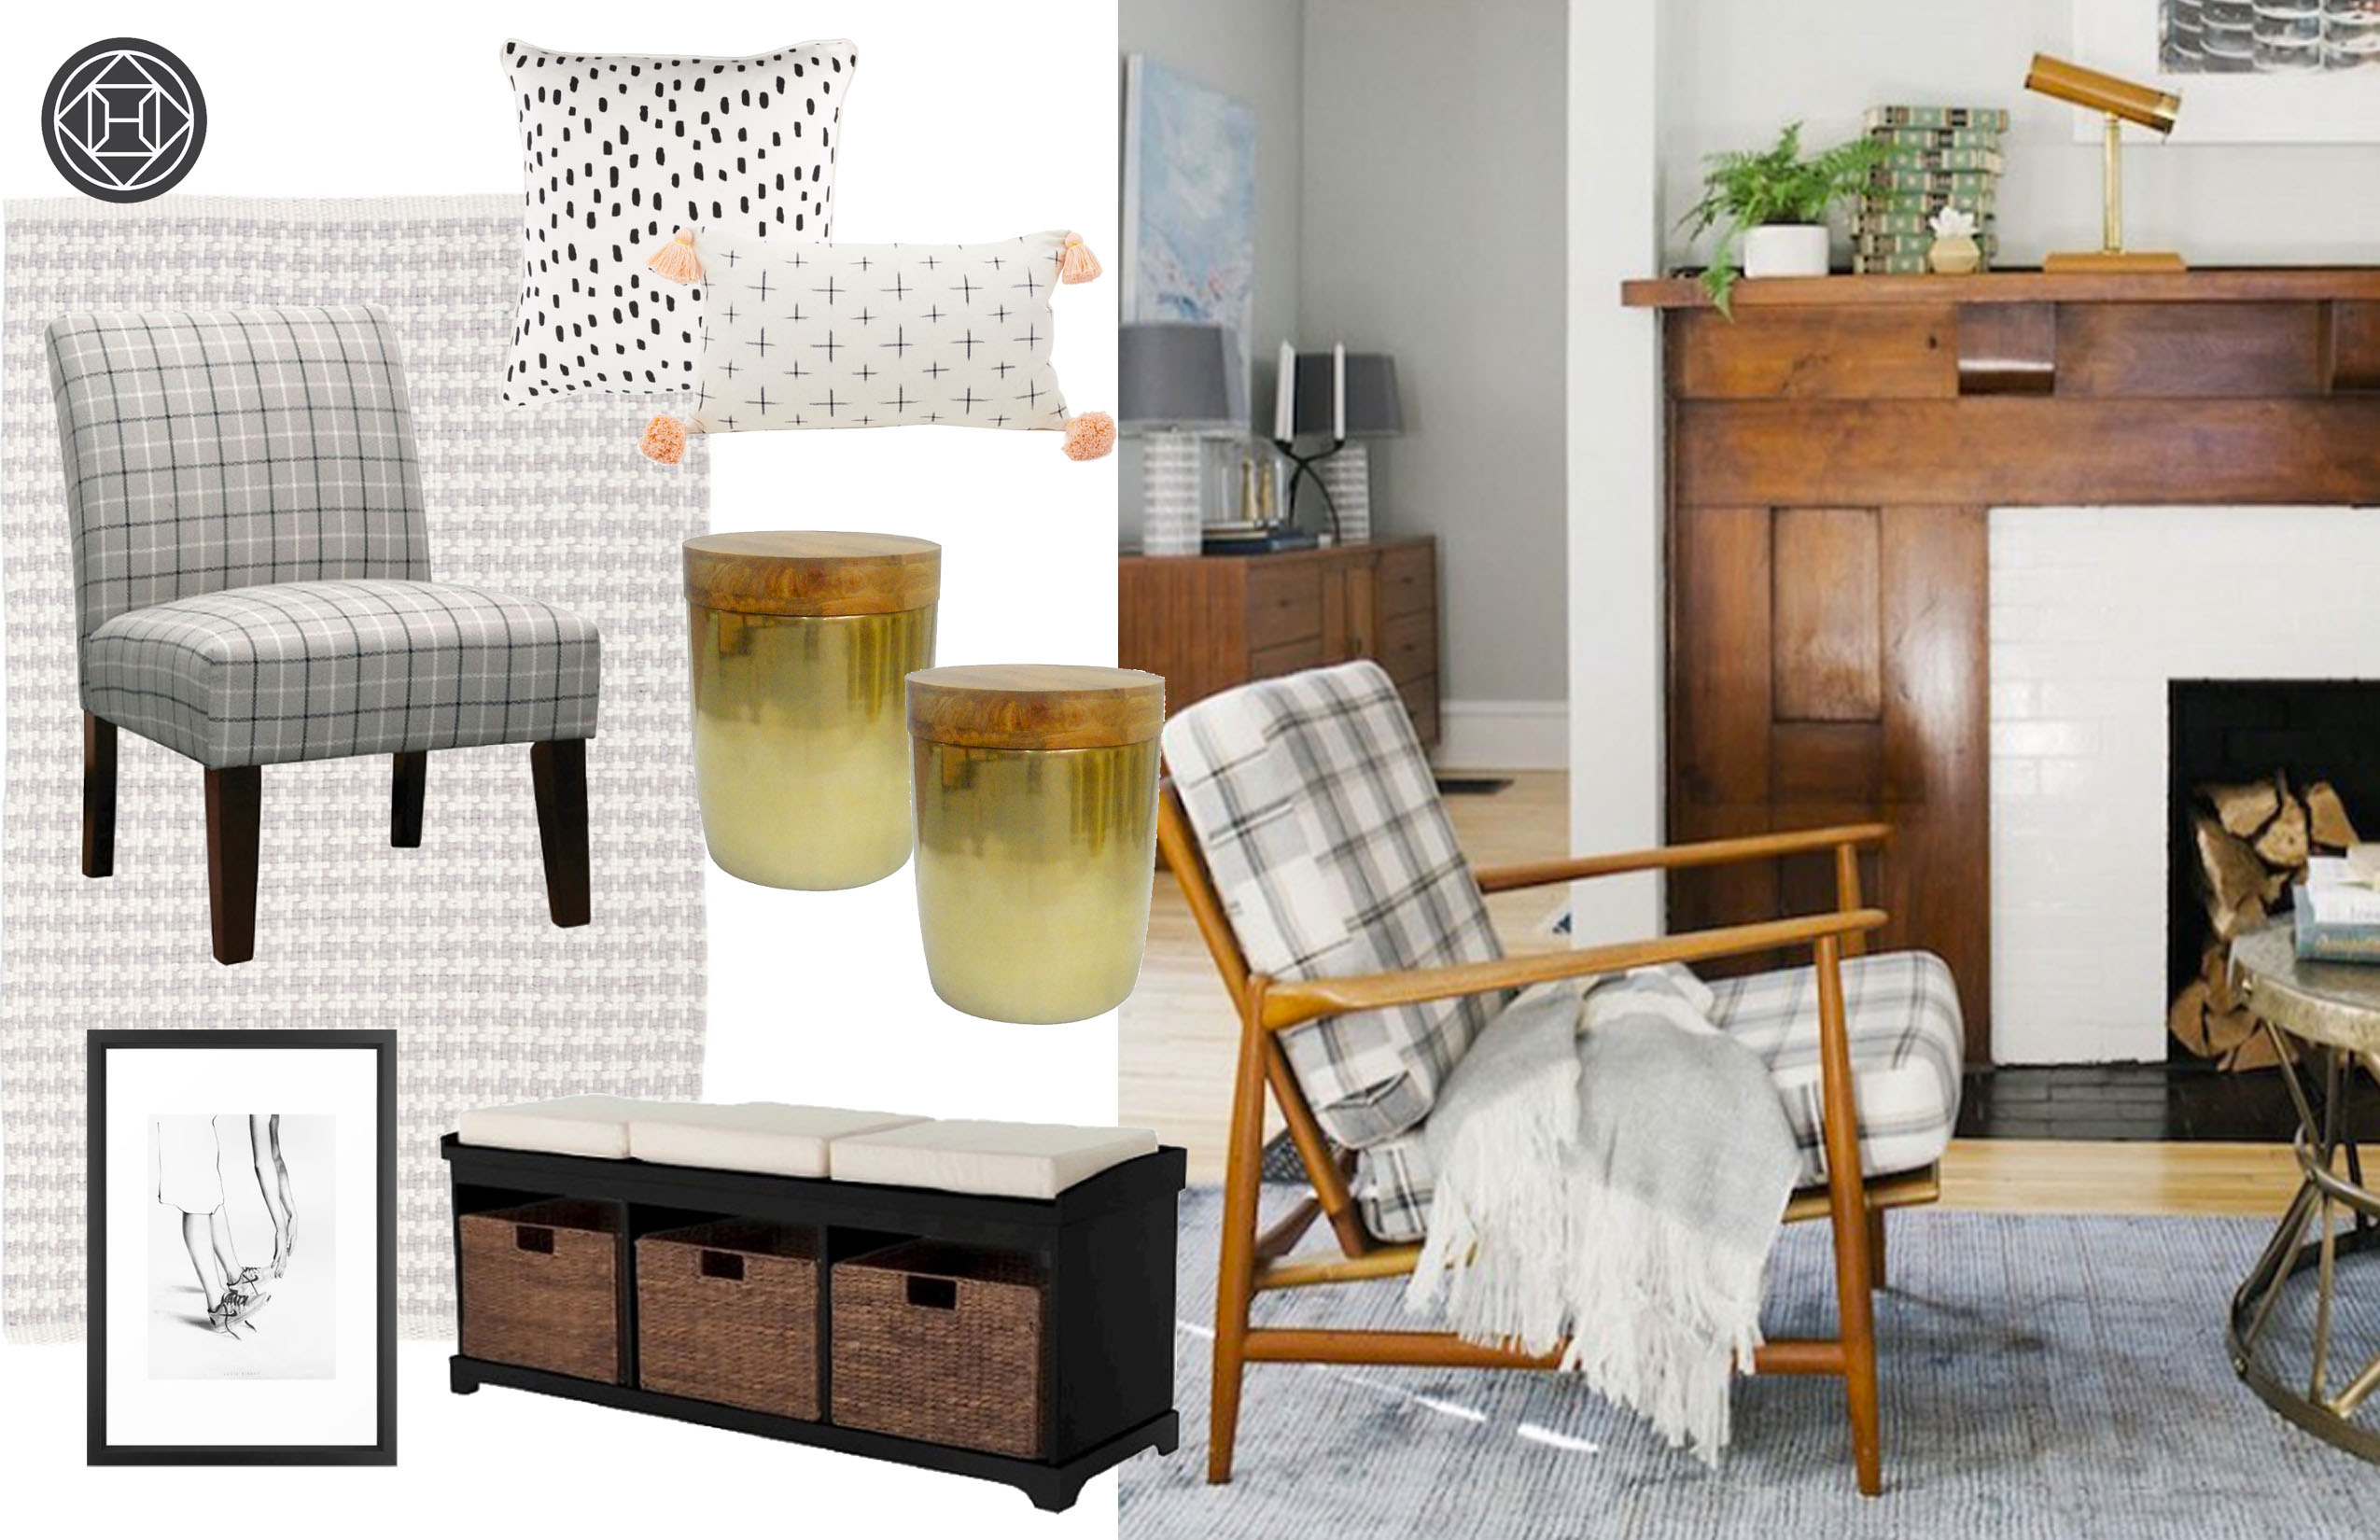 One of three design ideas for our editor's living room from Havenly